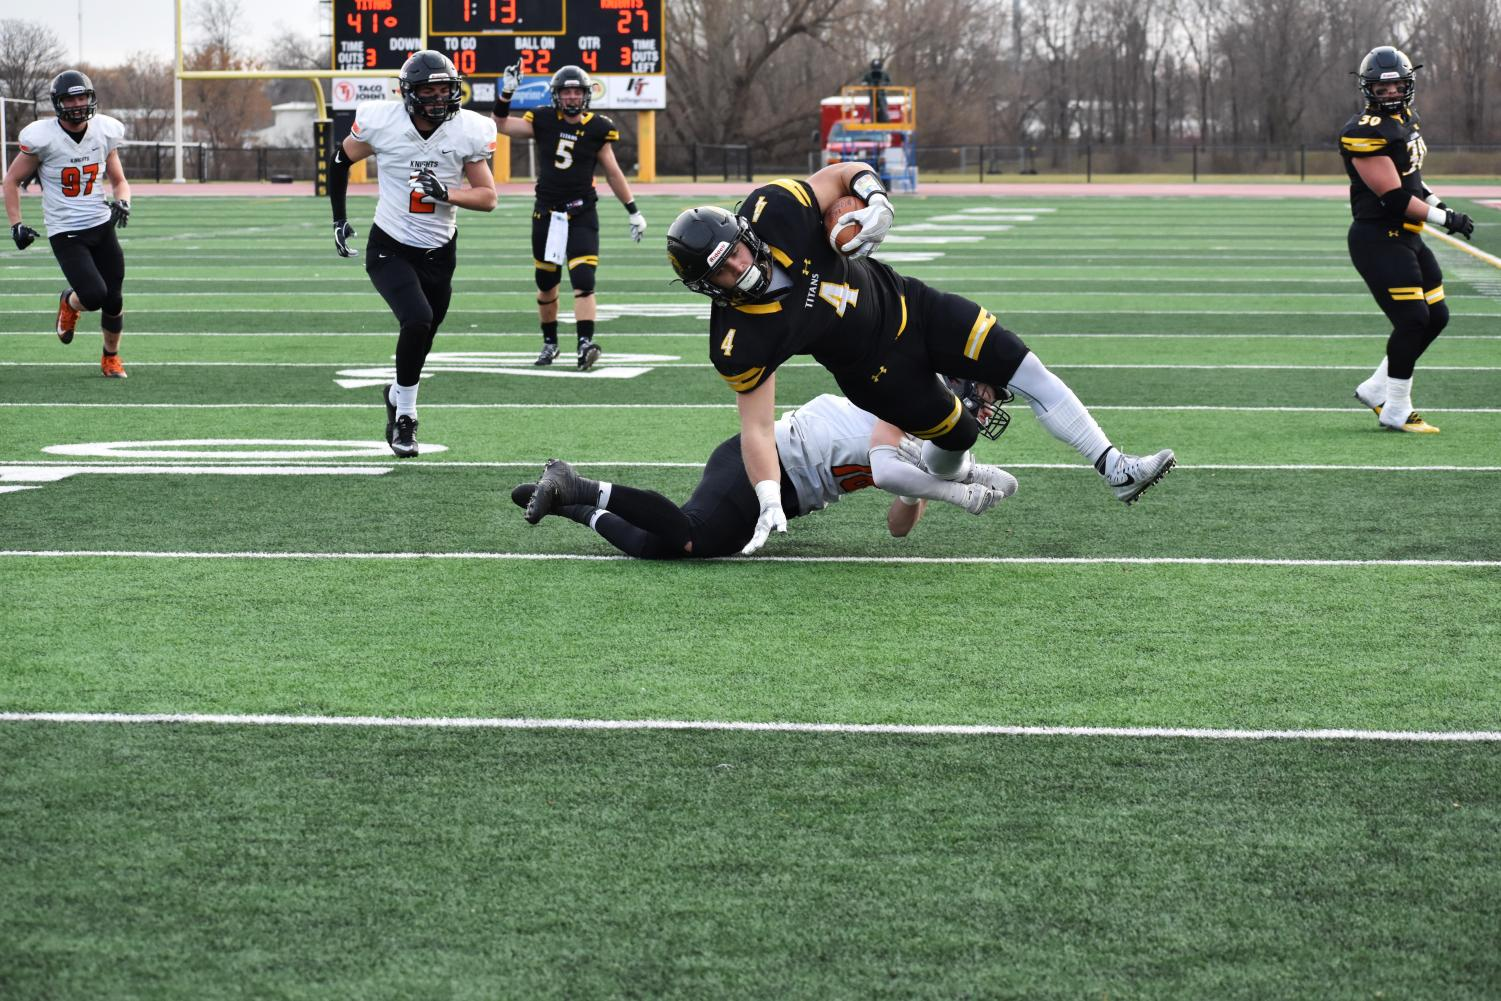 Looking to go watch a UW Oshkosh football home game next season? There will only be three to chose from out of the nine-game slate for 2018. The Titans' first home contest of the season doesn't happen until Oct. 13 against UW-Platteville.